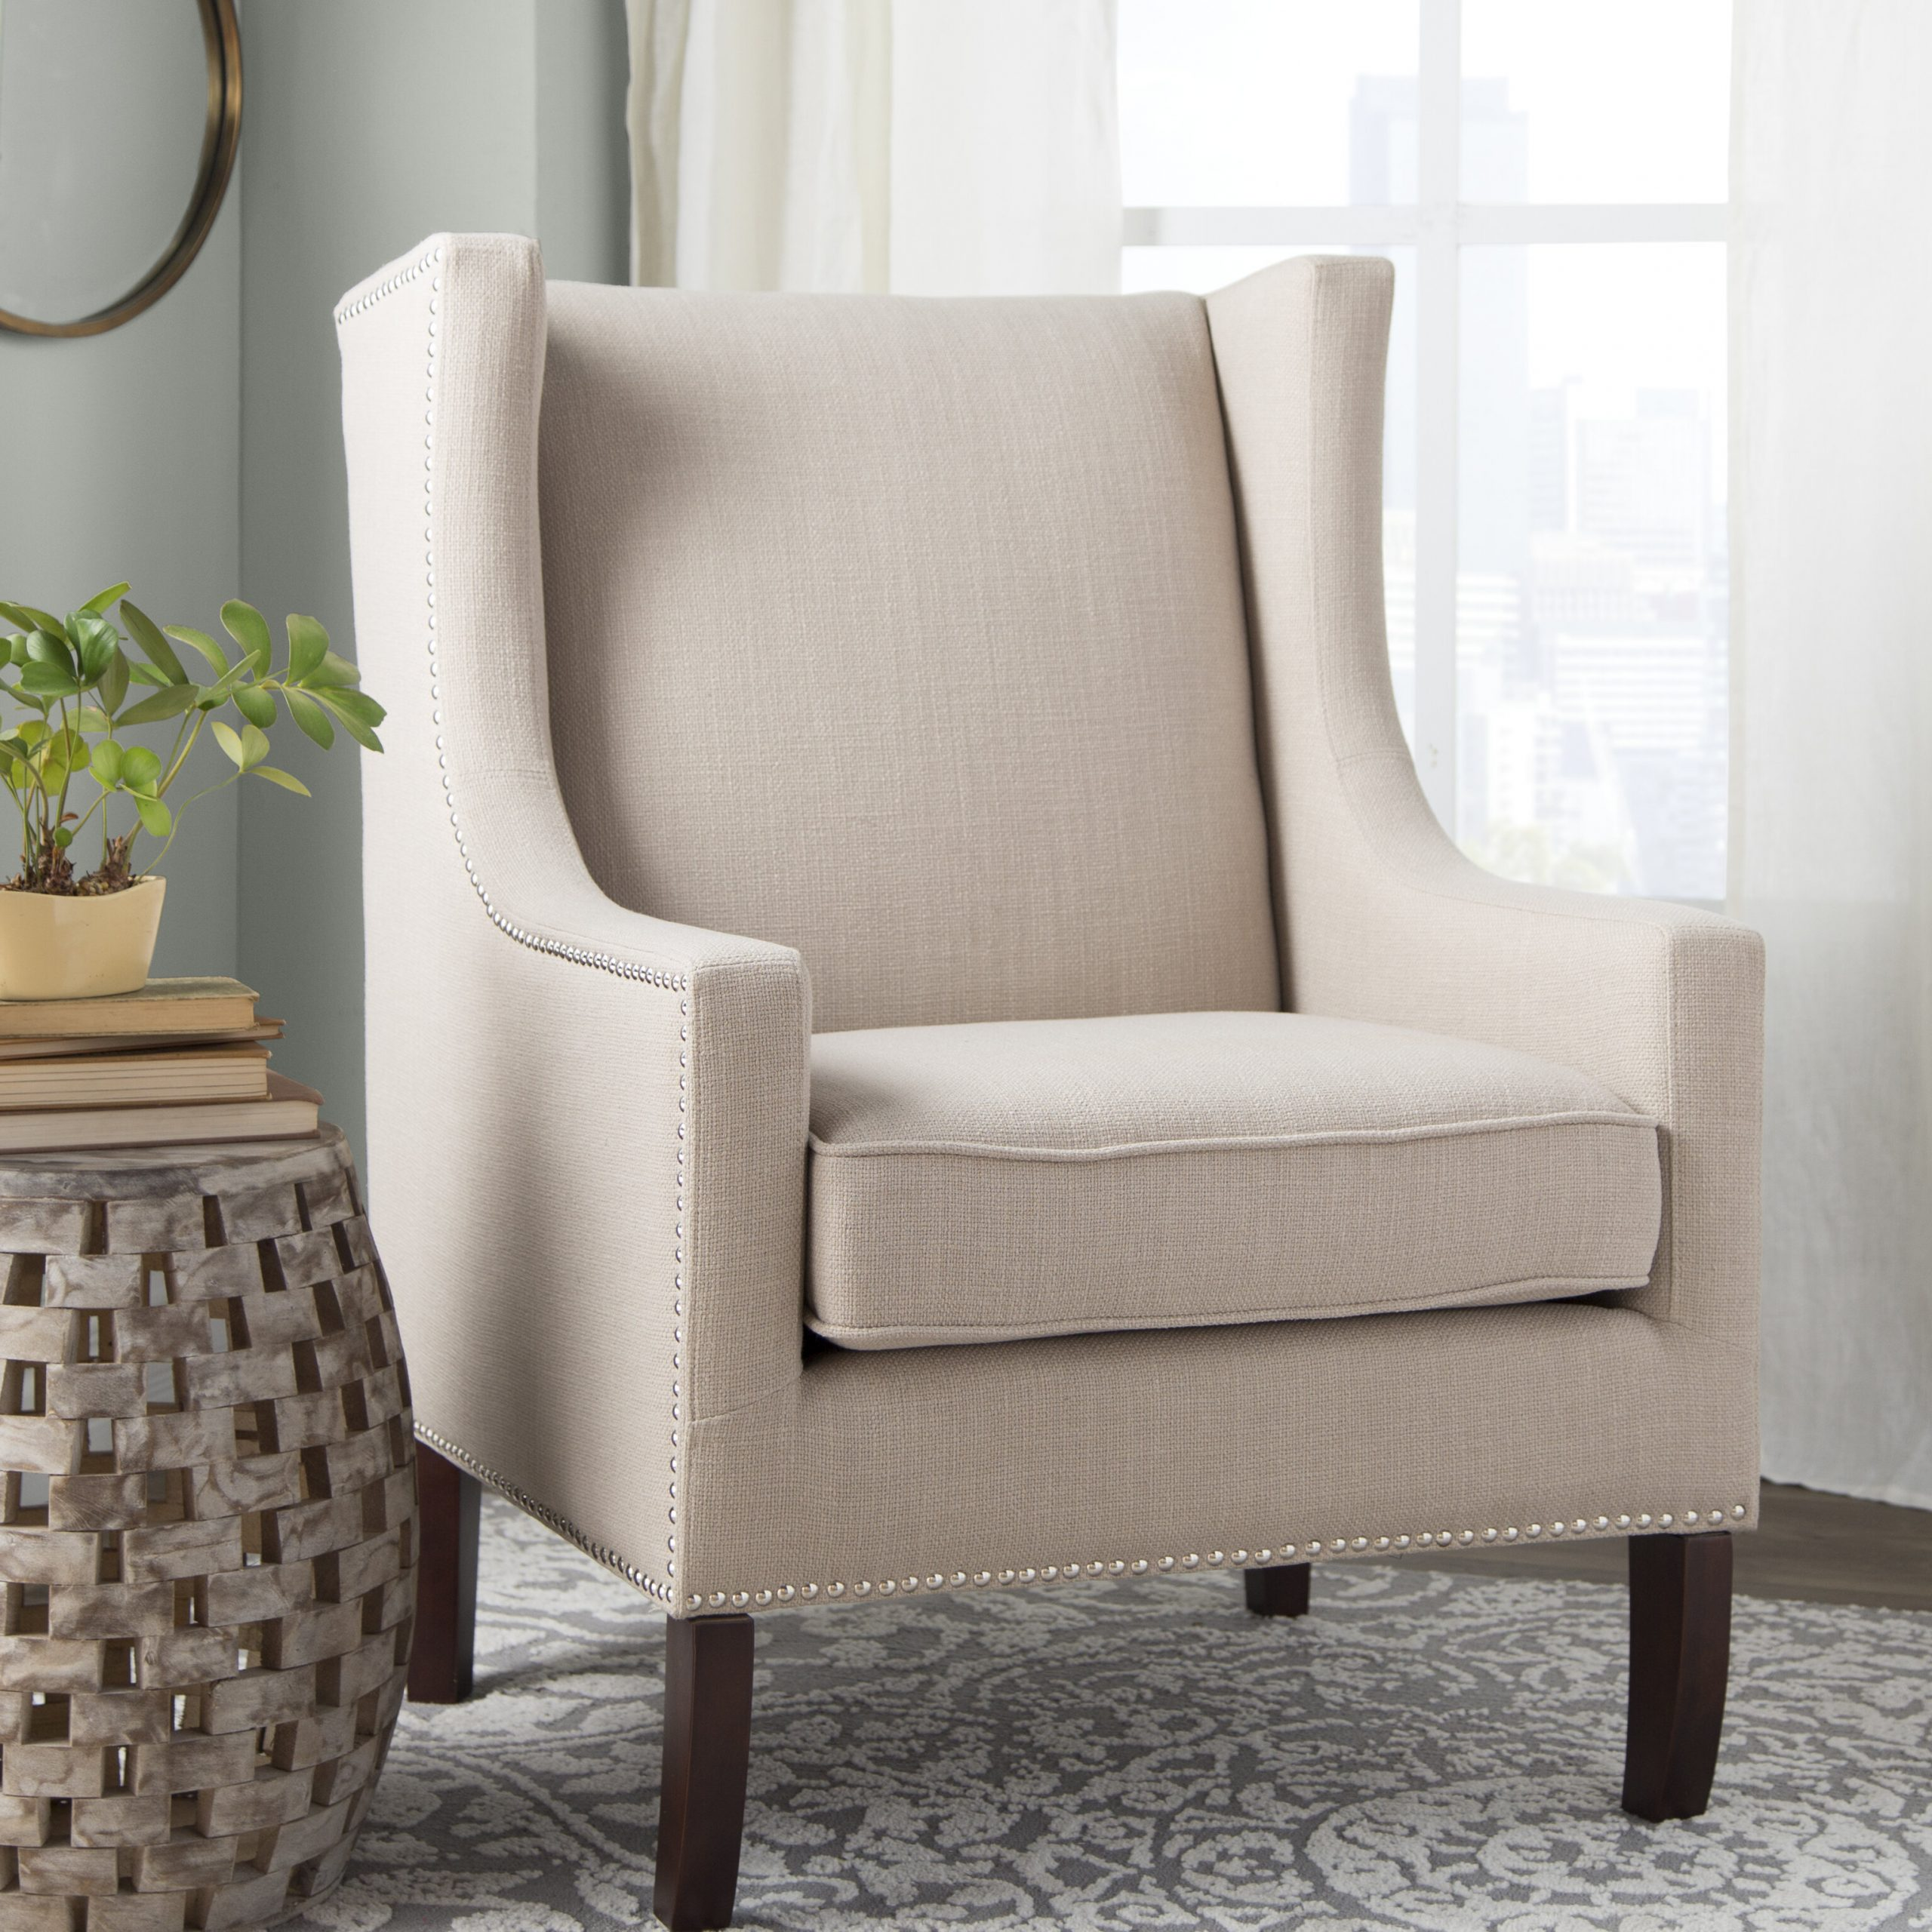 Wayfair Within Munson Linen Barrel Chairs (View 15 of 20)